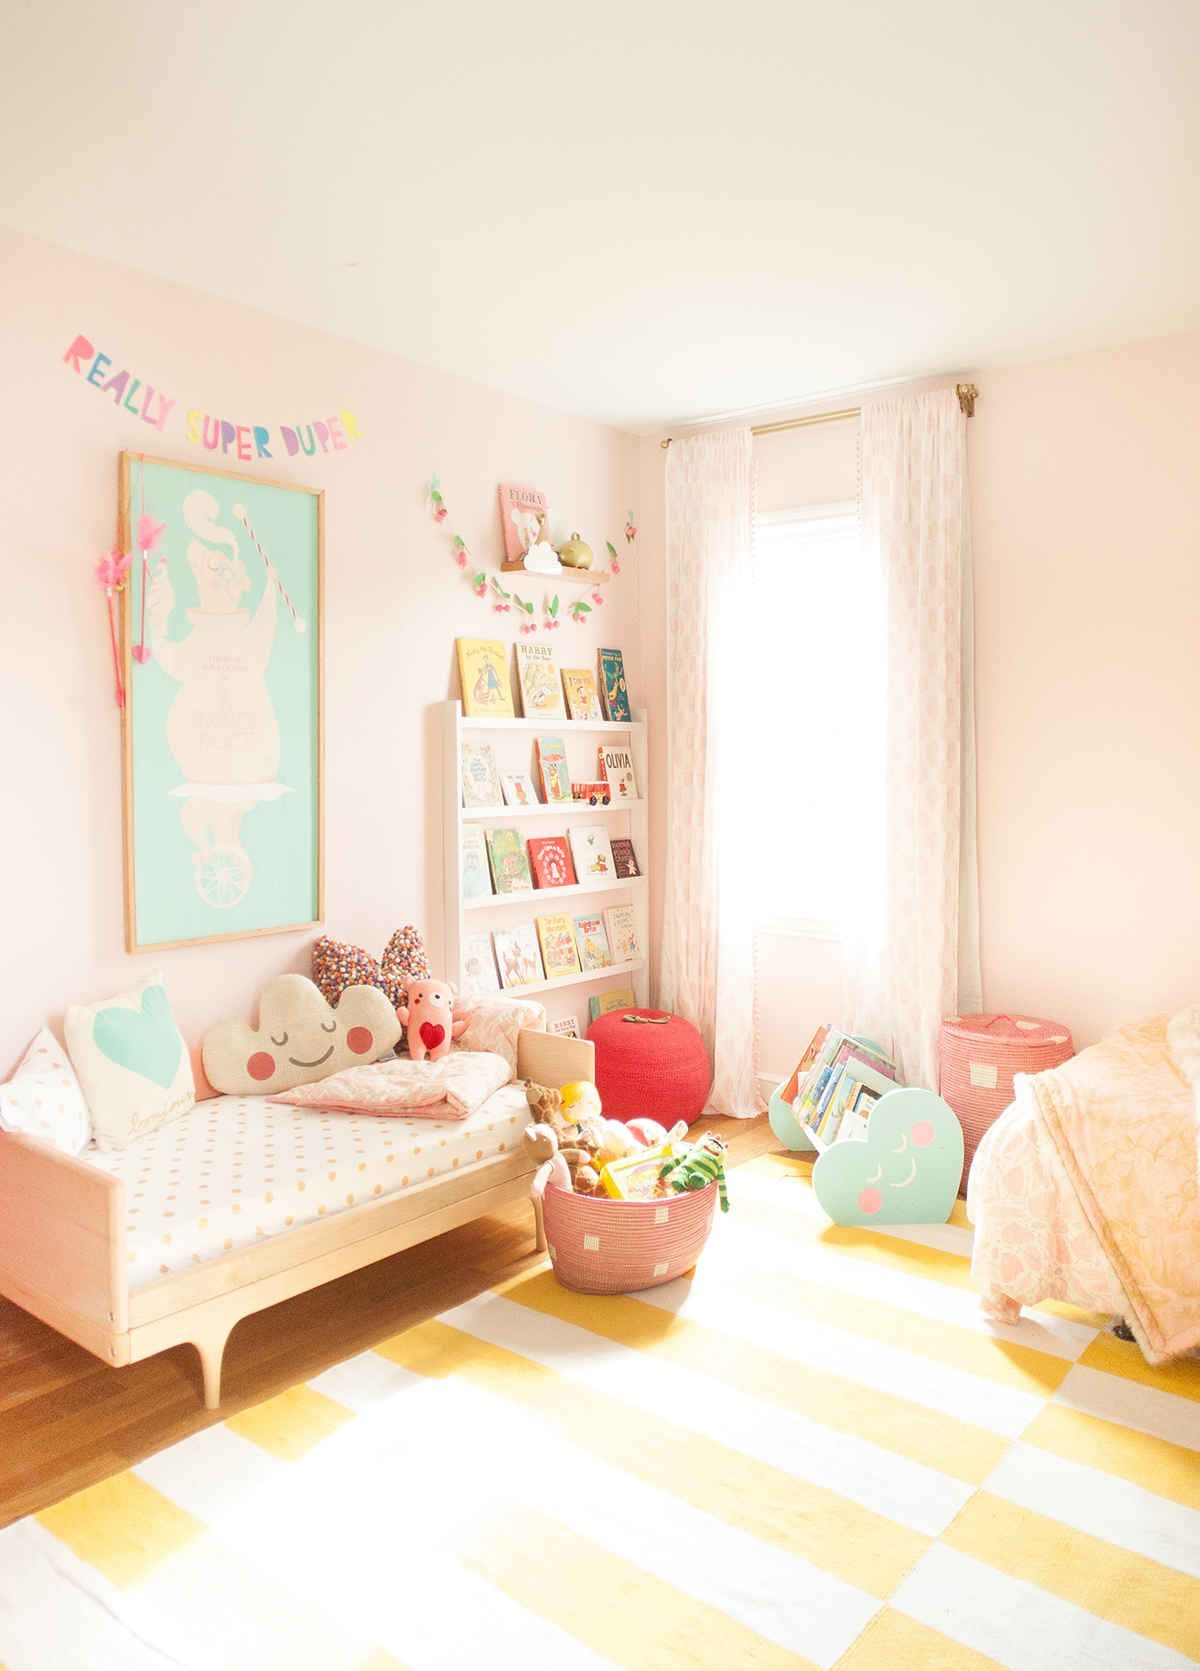 walmart rods girls for com of curtain size checkot youth room colorful kids curtains full bedroom rooms red ideas drapes kid